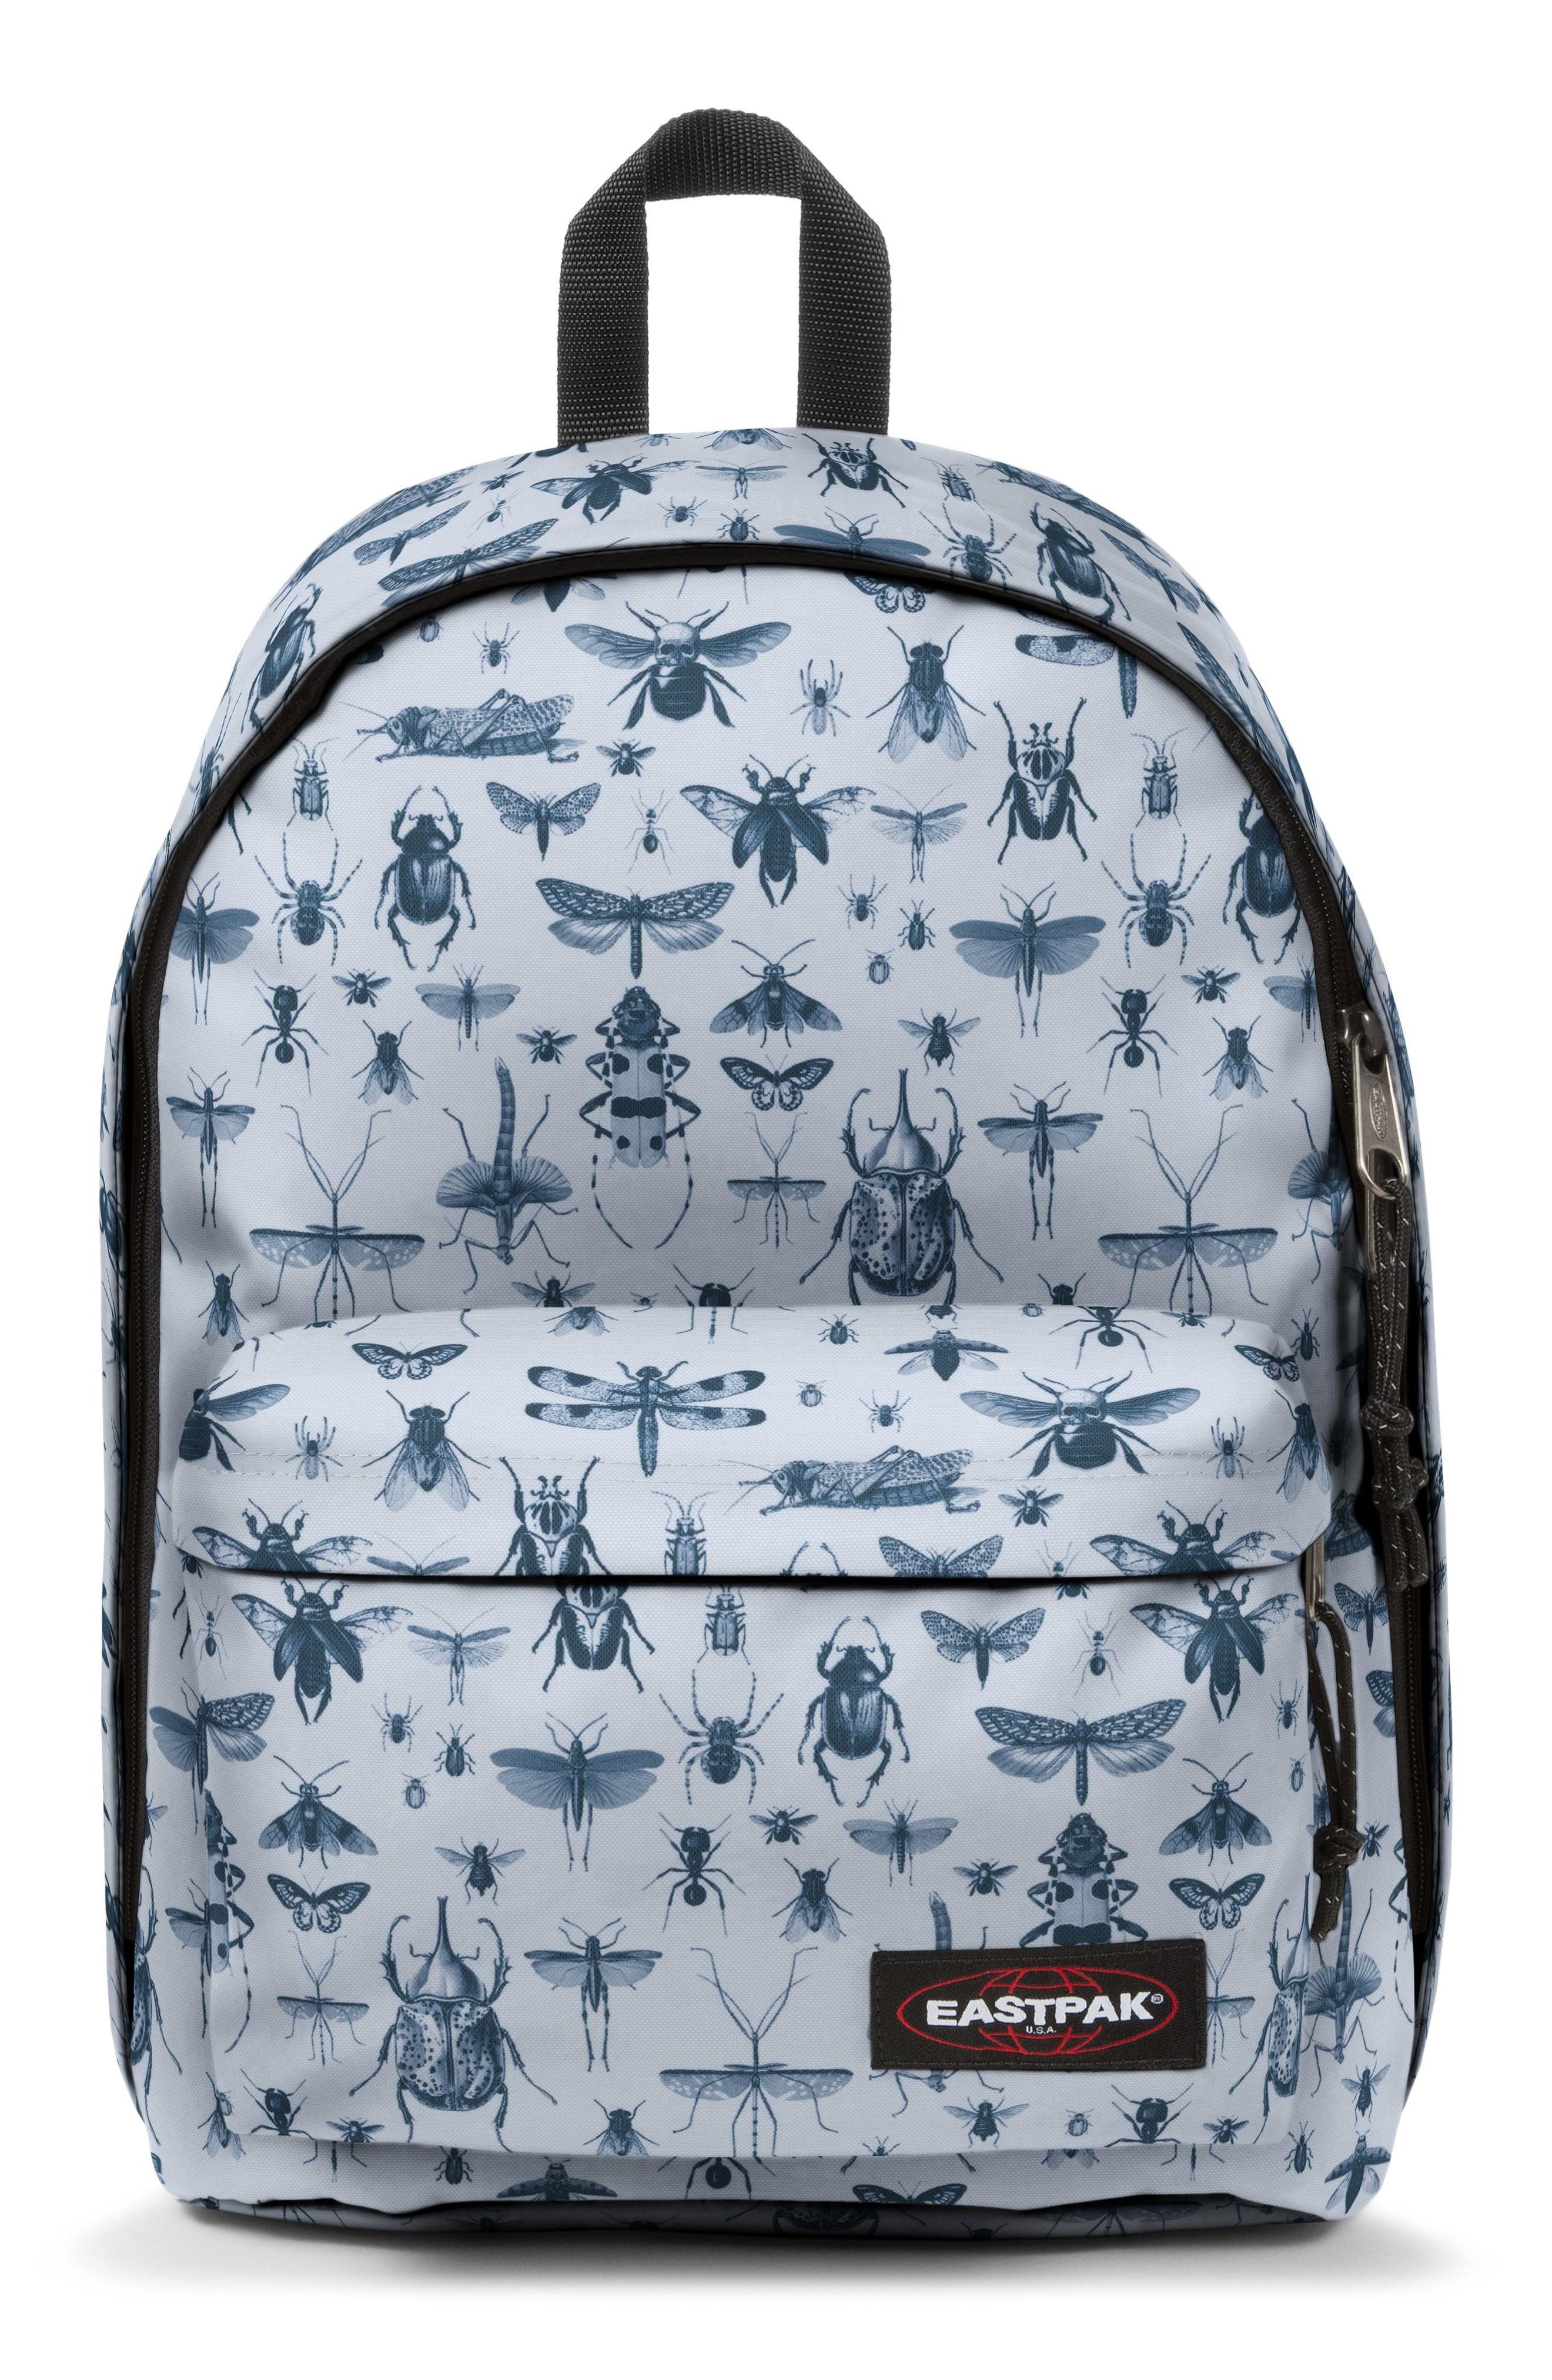 Eastpack Out Of Office Backpack - Blue